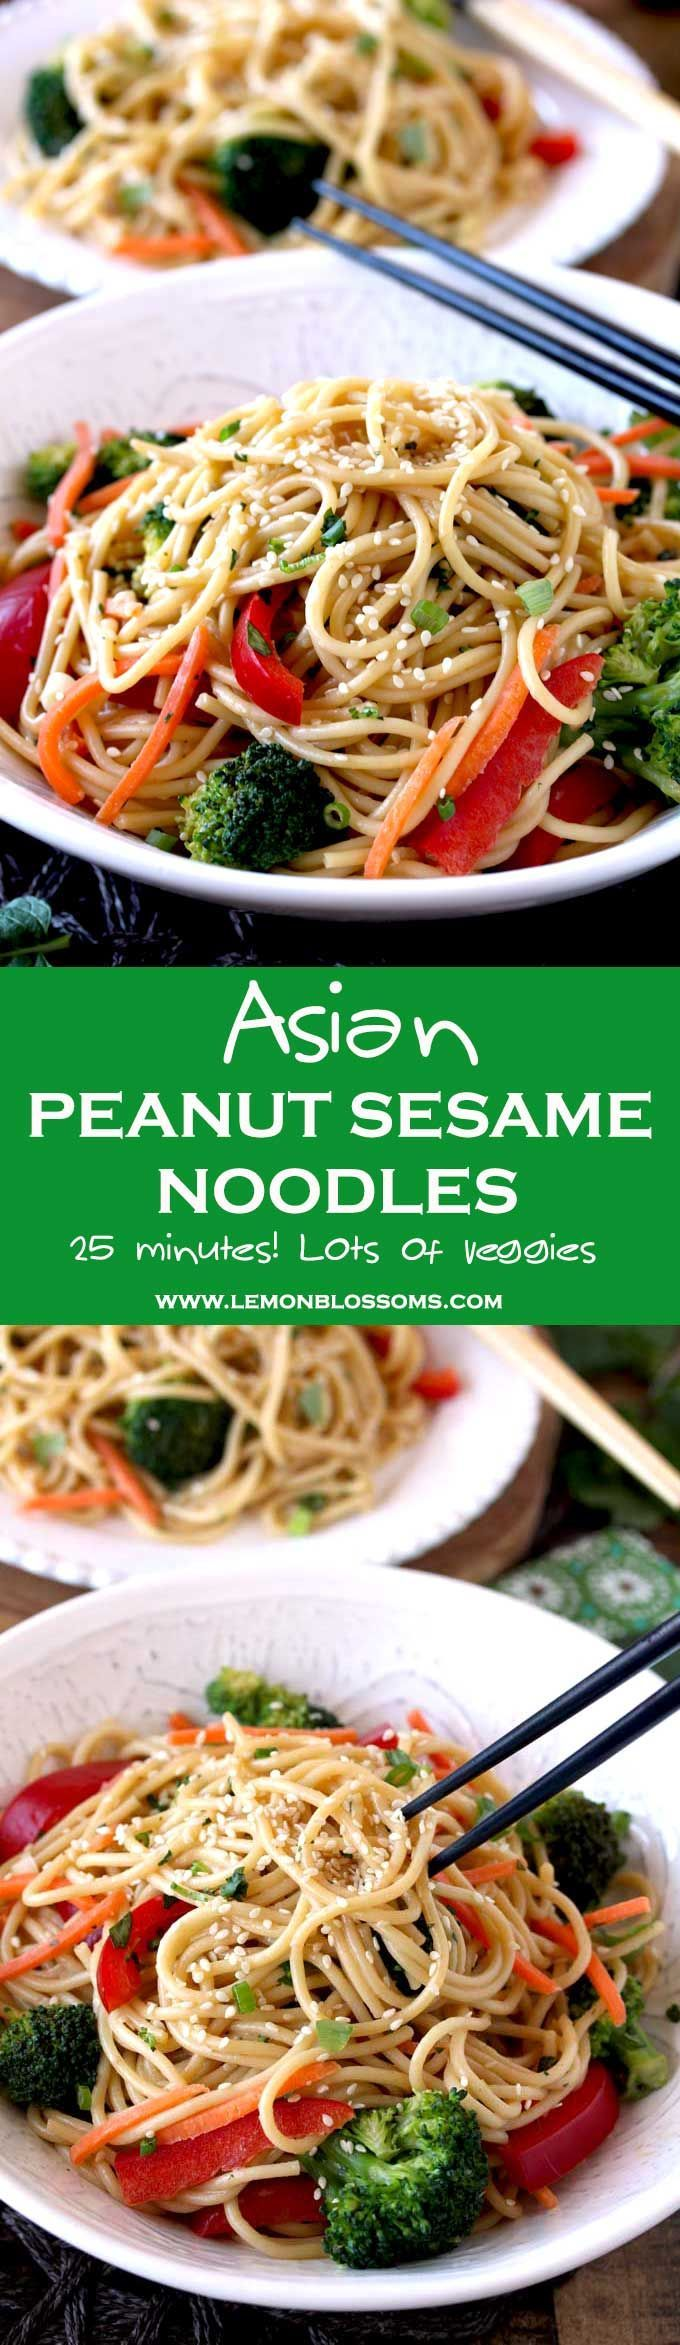 These quick and easy Asian Peanut Sesame Noodles are made in 25 minutes! Noodles, veggies and fresh herbs are tossed in the most delicious and creamy peanut sesame dressing. Perfect served hot, at room temperature or cold. Definitely a meal you will make over and over again! #Asian #Noodles #Sesame #easy #quick via @lmnblossoms